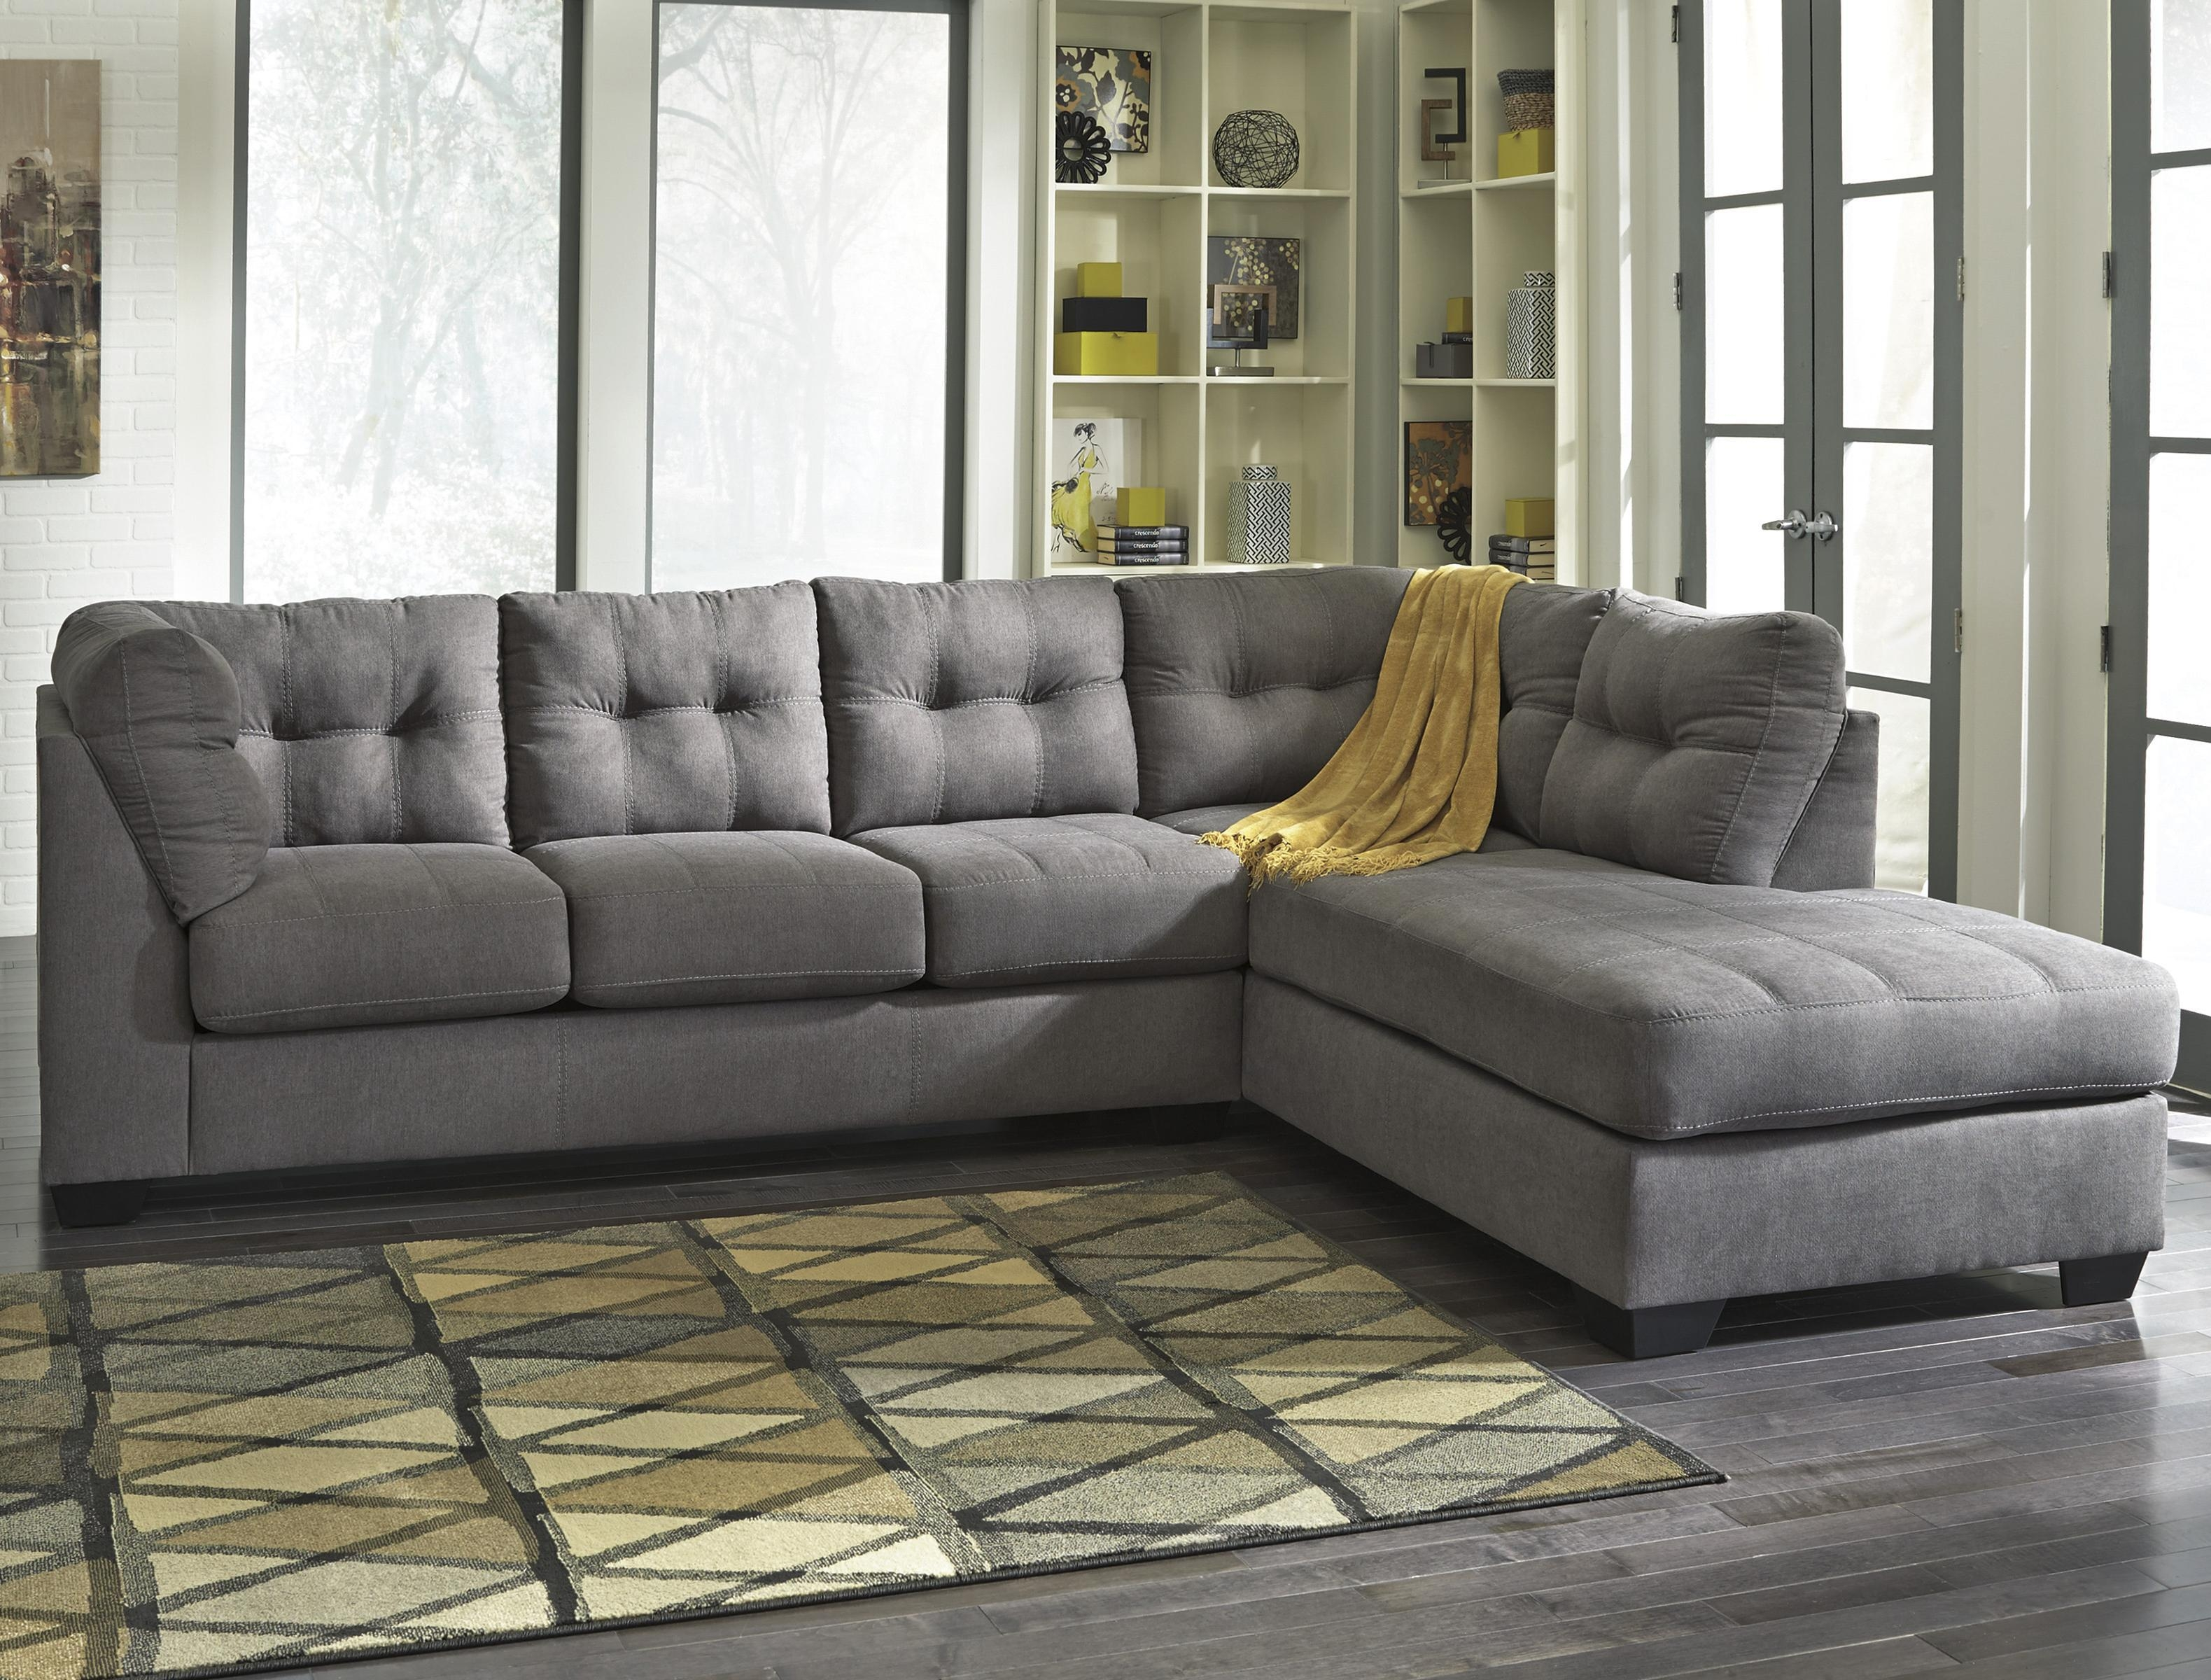 Benchcraft Maier – Charcoal 2 Piece Sectional With Right Chaise Pertaining To Sectional Sofa With 2 Chaises (Image 7 of 20)